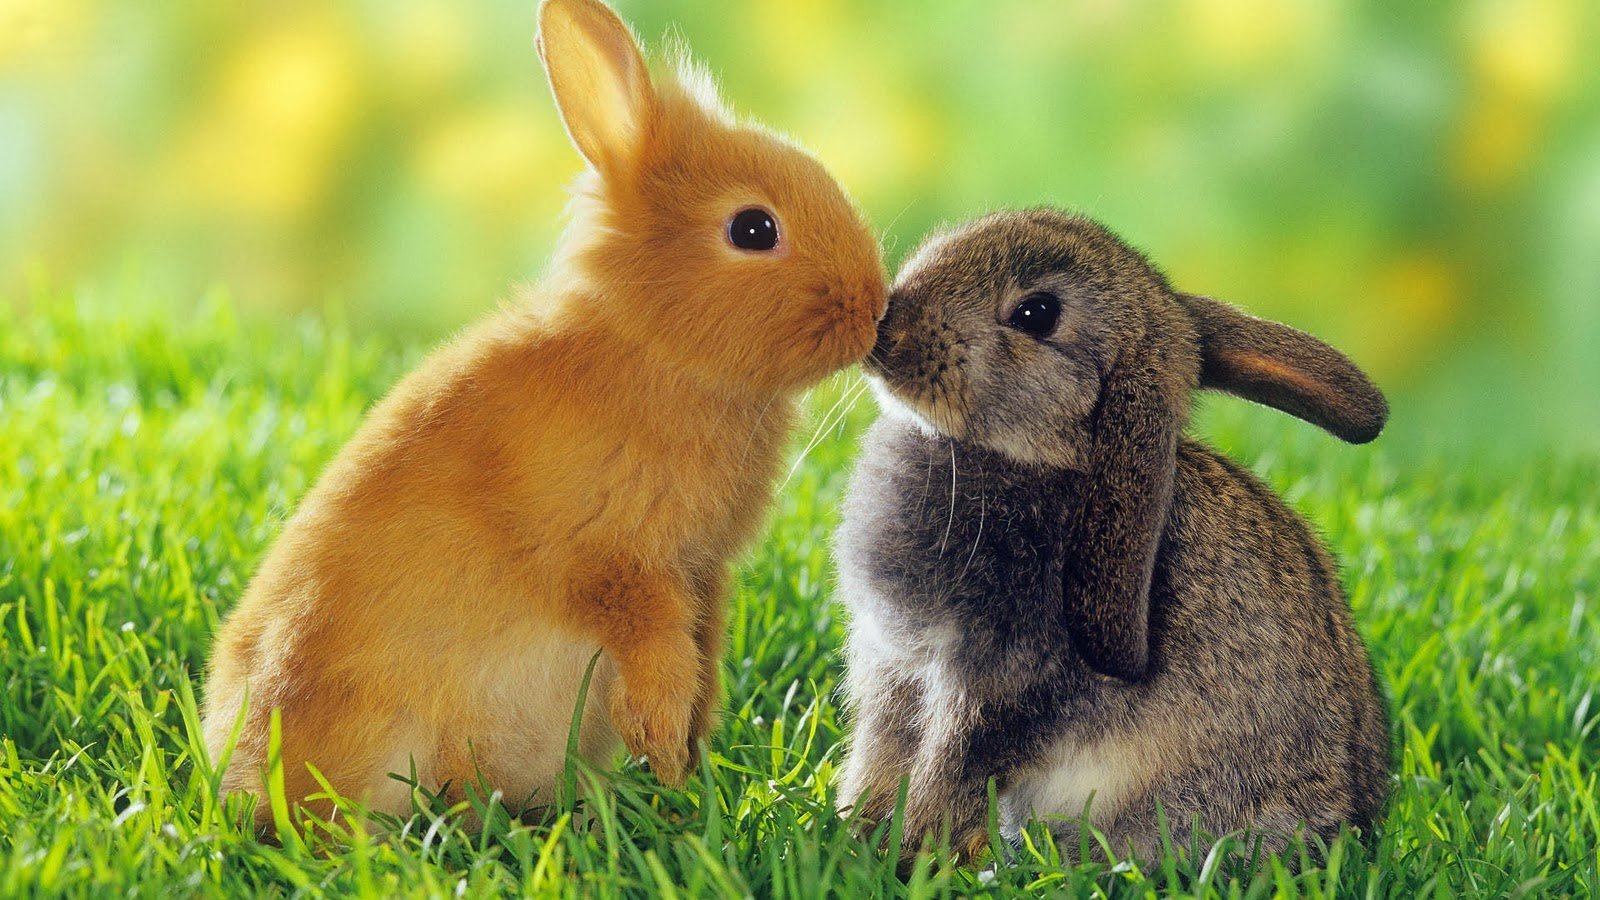 HD Wallpapers Downloads Beautiful Baby Rabbits Wallpapers 1600x900